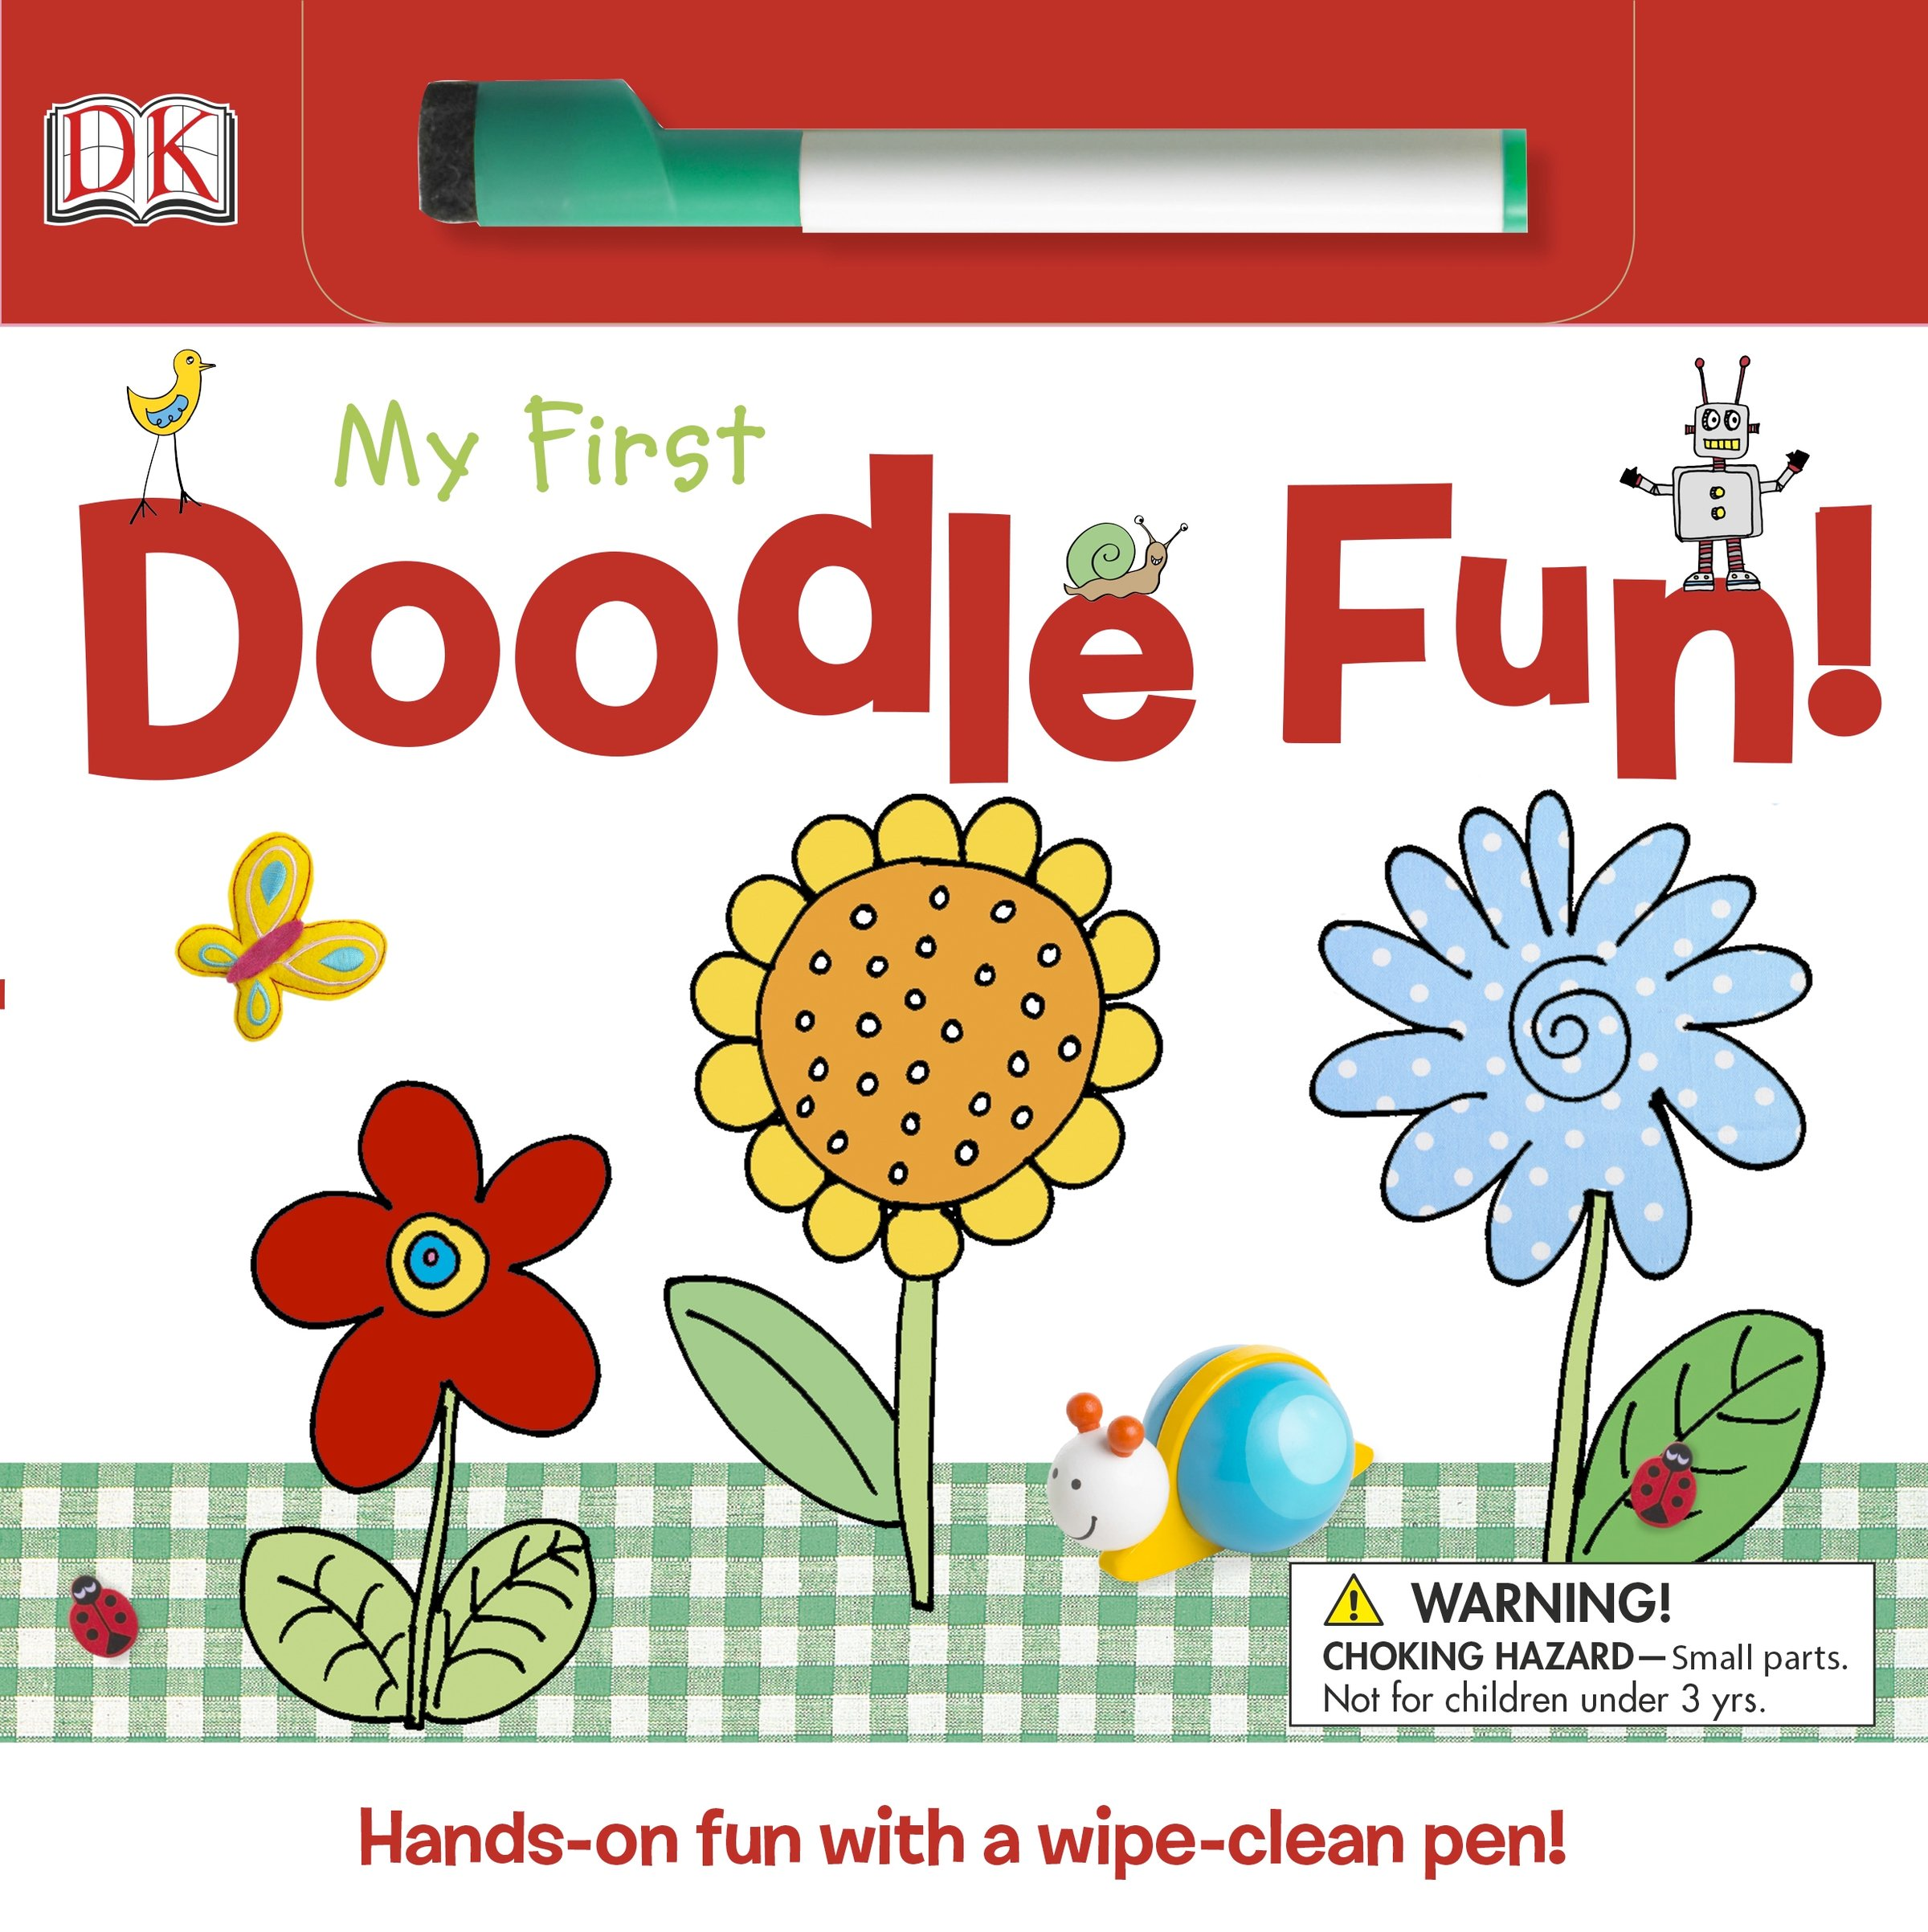 First Doodle Fun Board Books product image